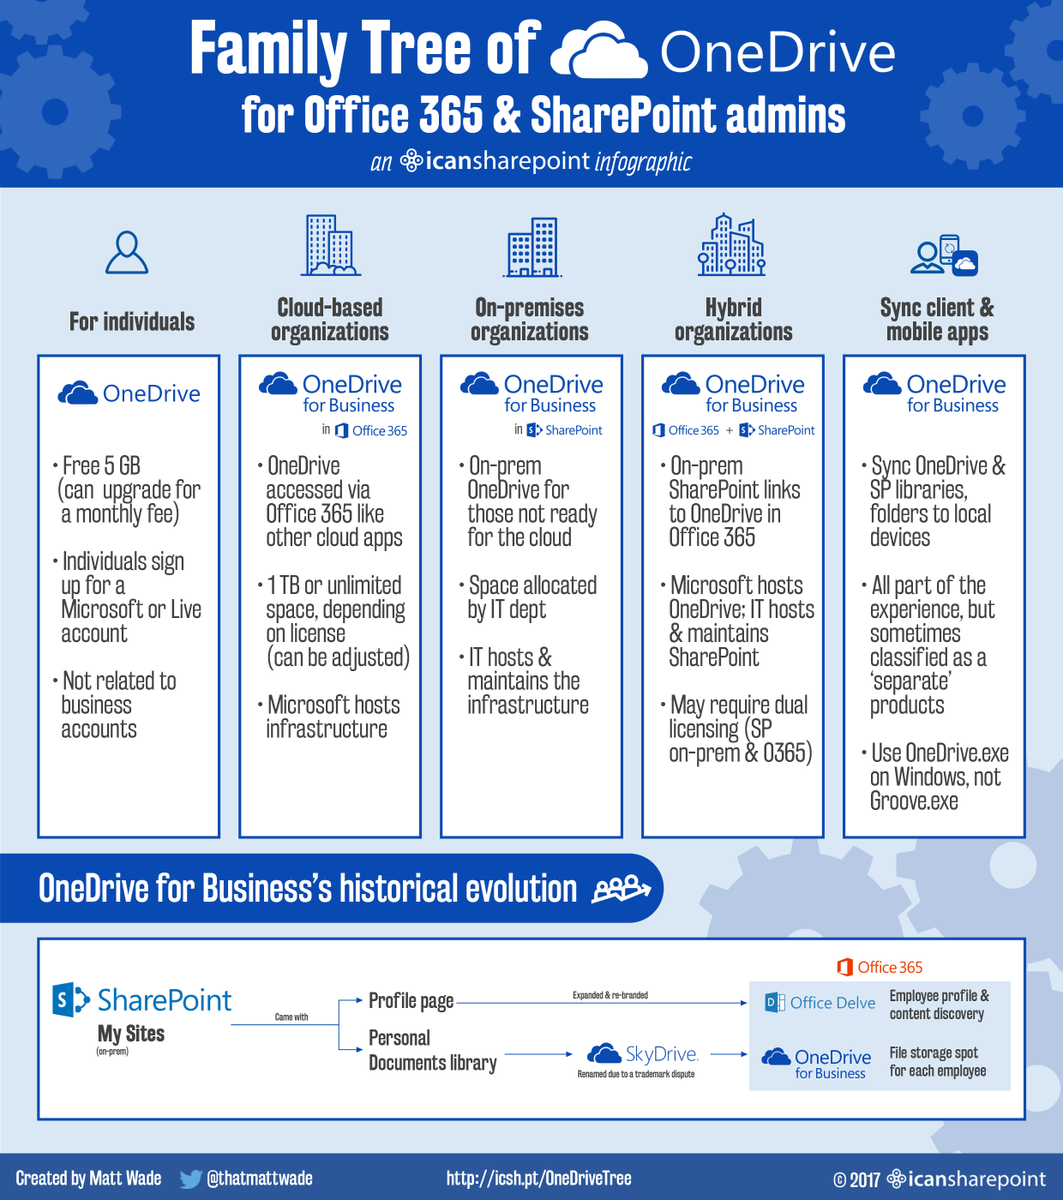 matt wade on twitter new infographic the onedrive family tree